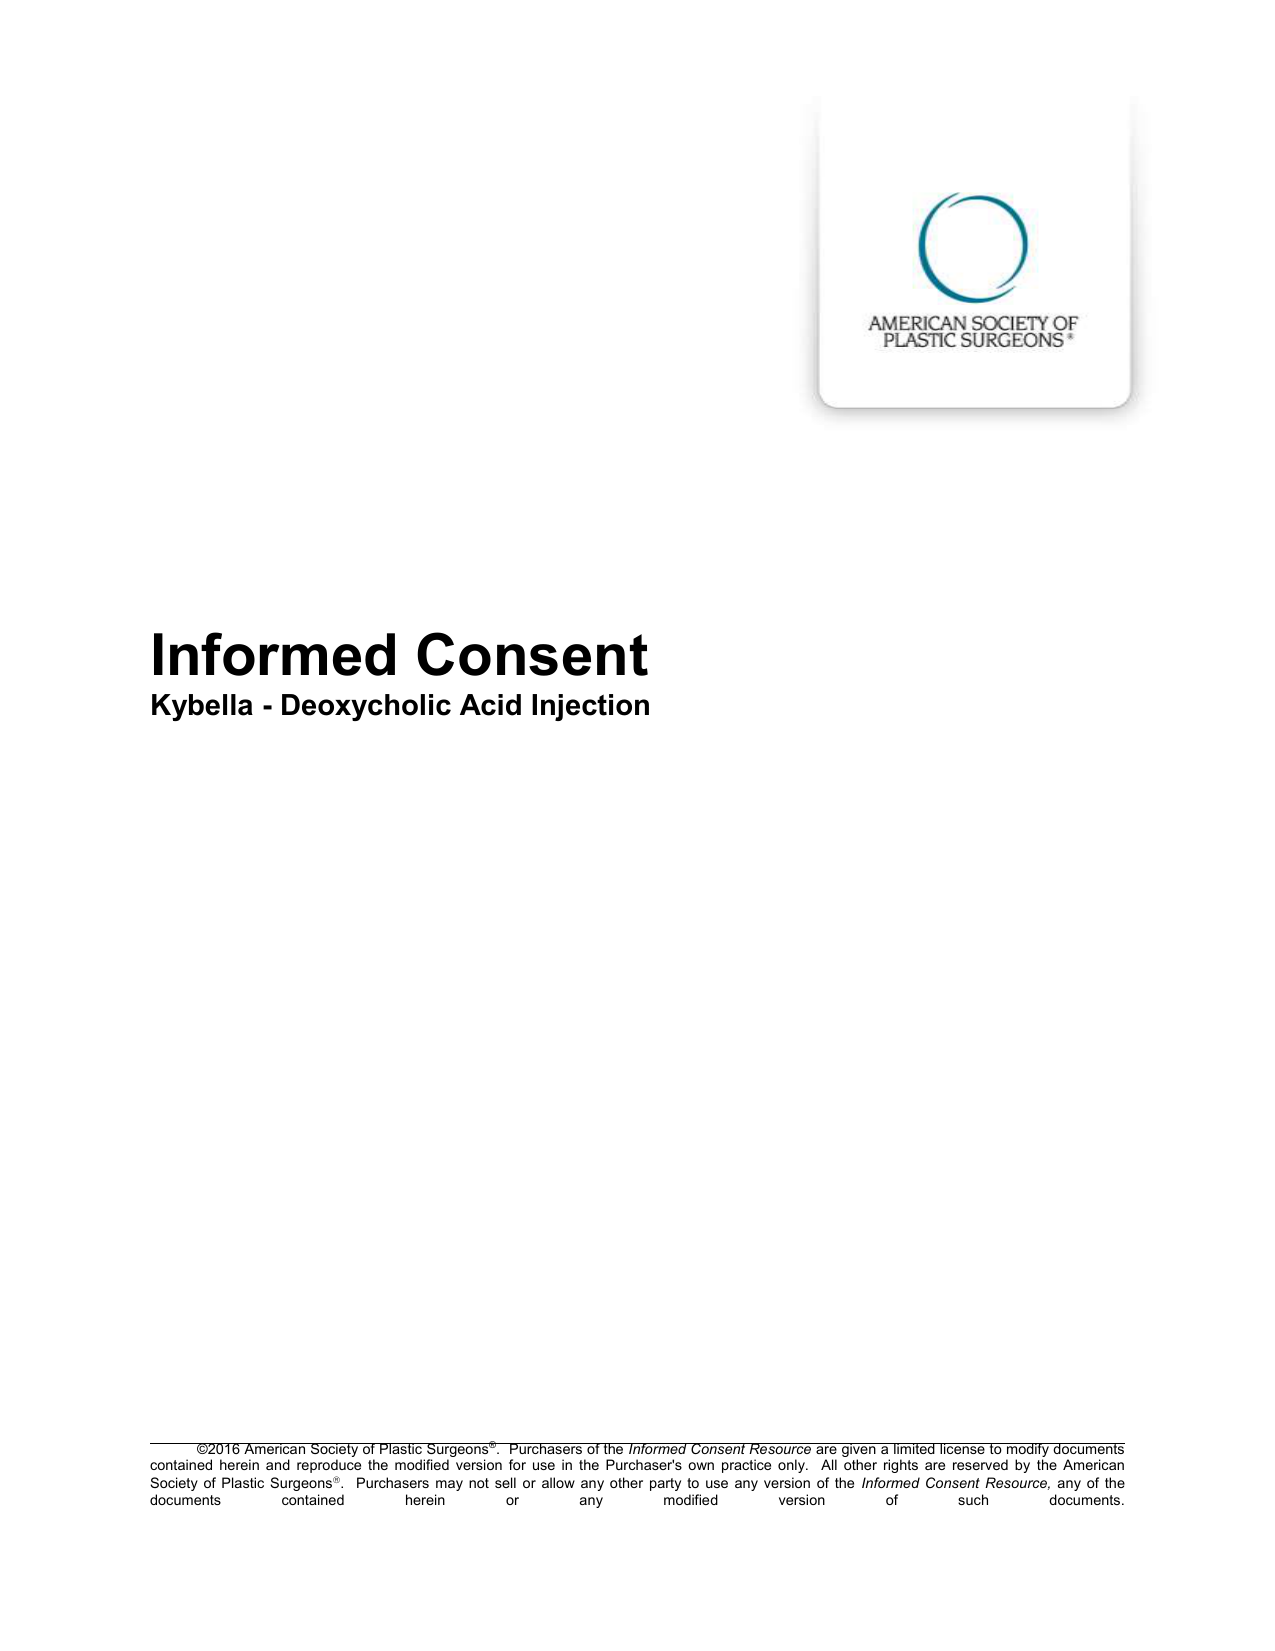 Informed Consent Kybella Deoxycholic Acid Injection Informed